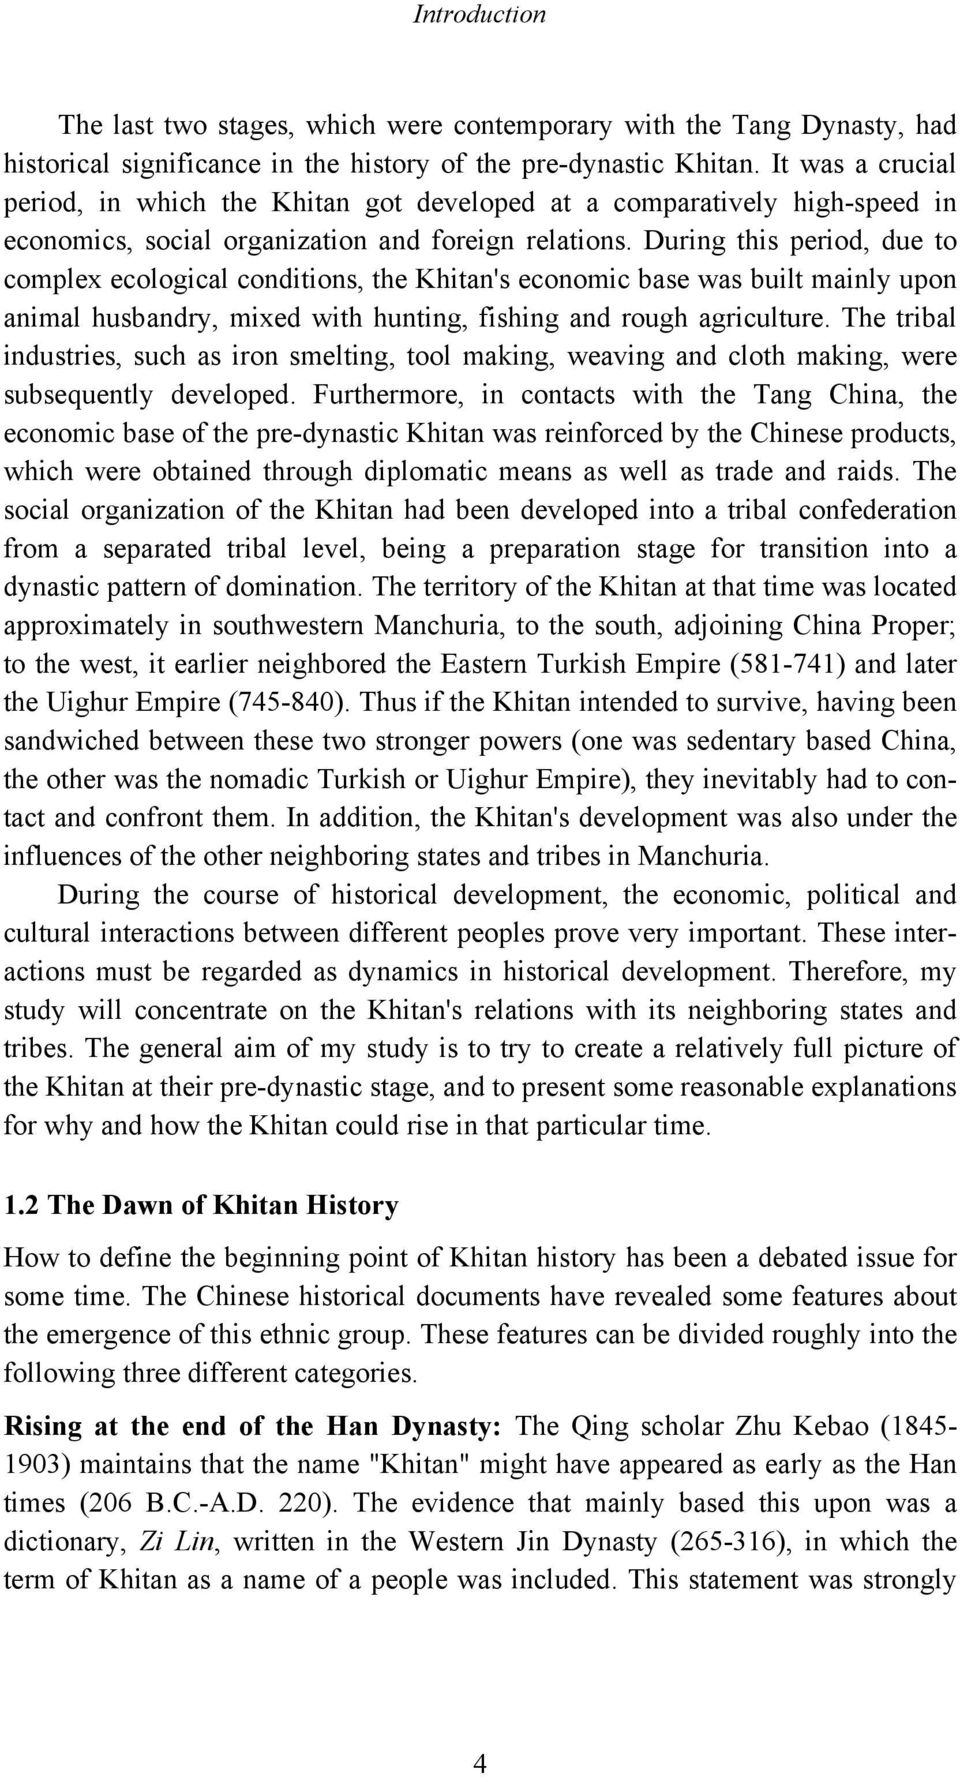 During this period, due to complex ecological conditions, the Khitan's economic base was built mainly upon animal husbandry, mixed with hunting, fishing and rough agriculture.